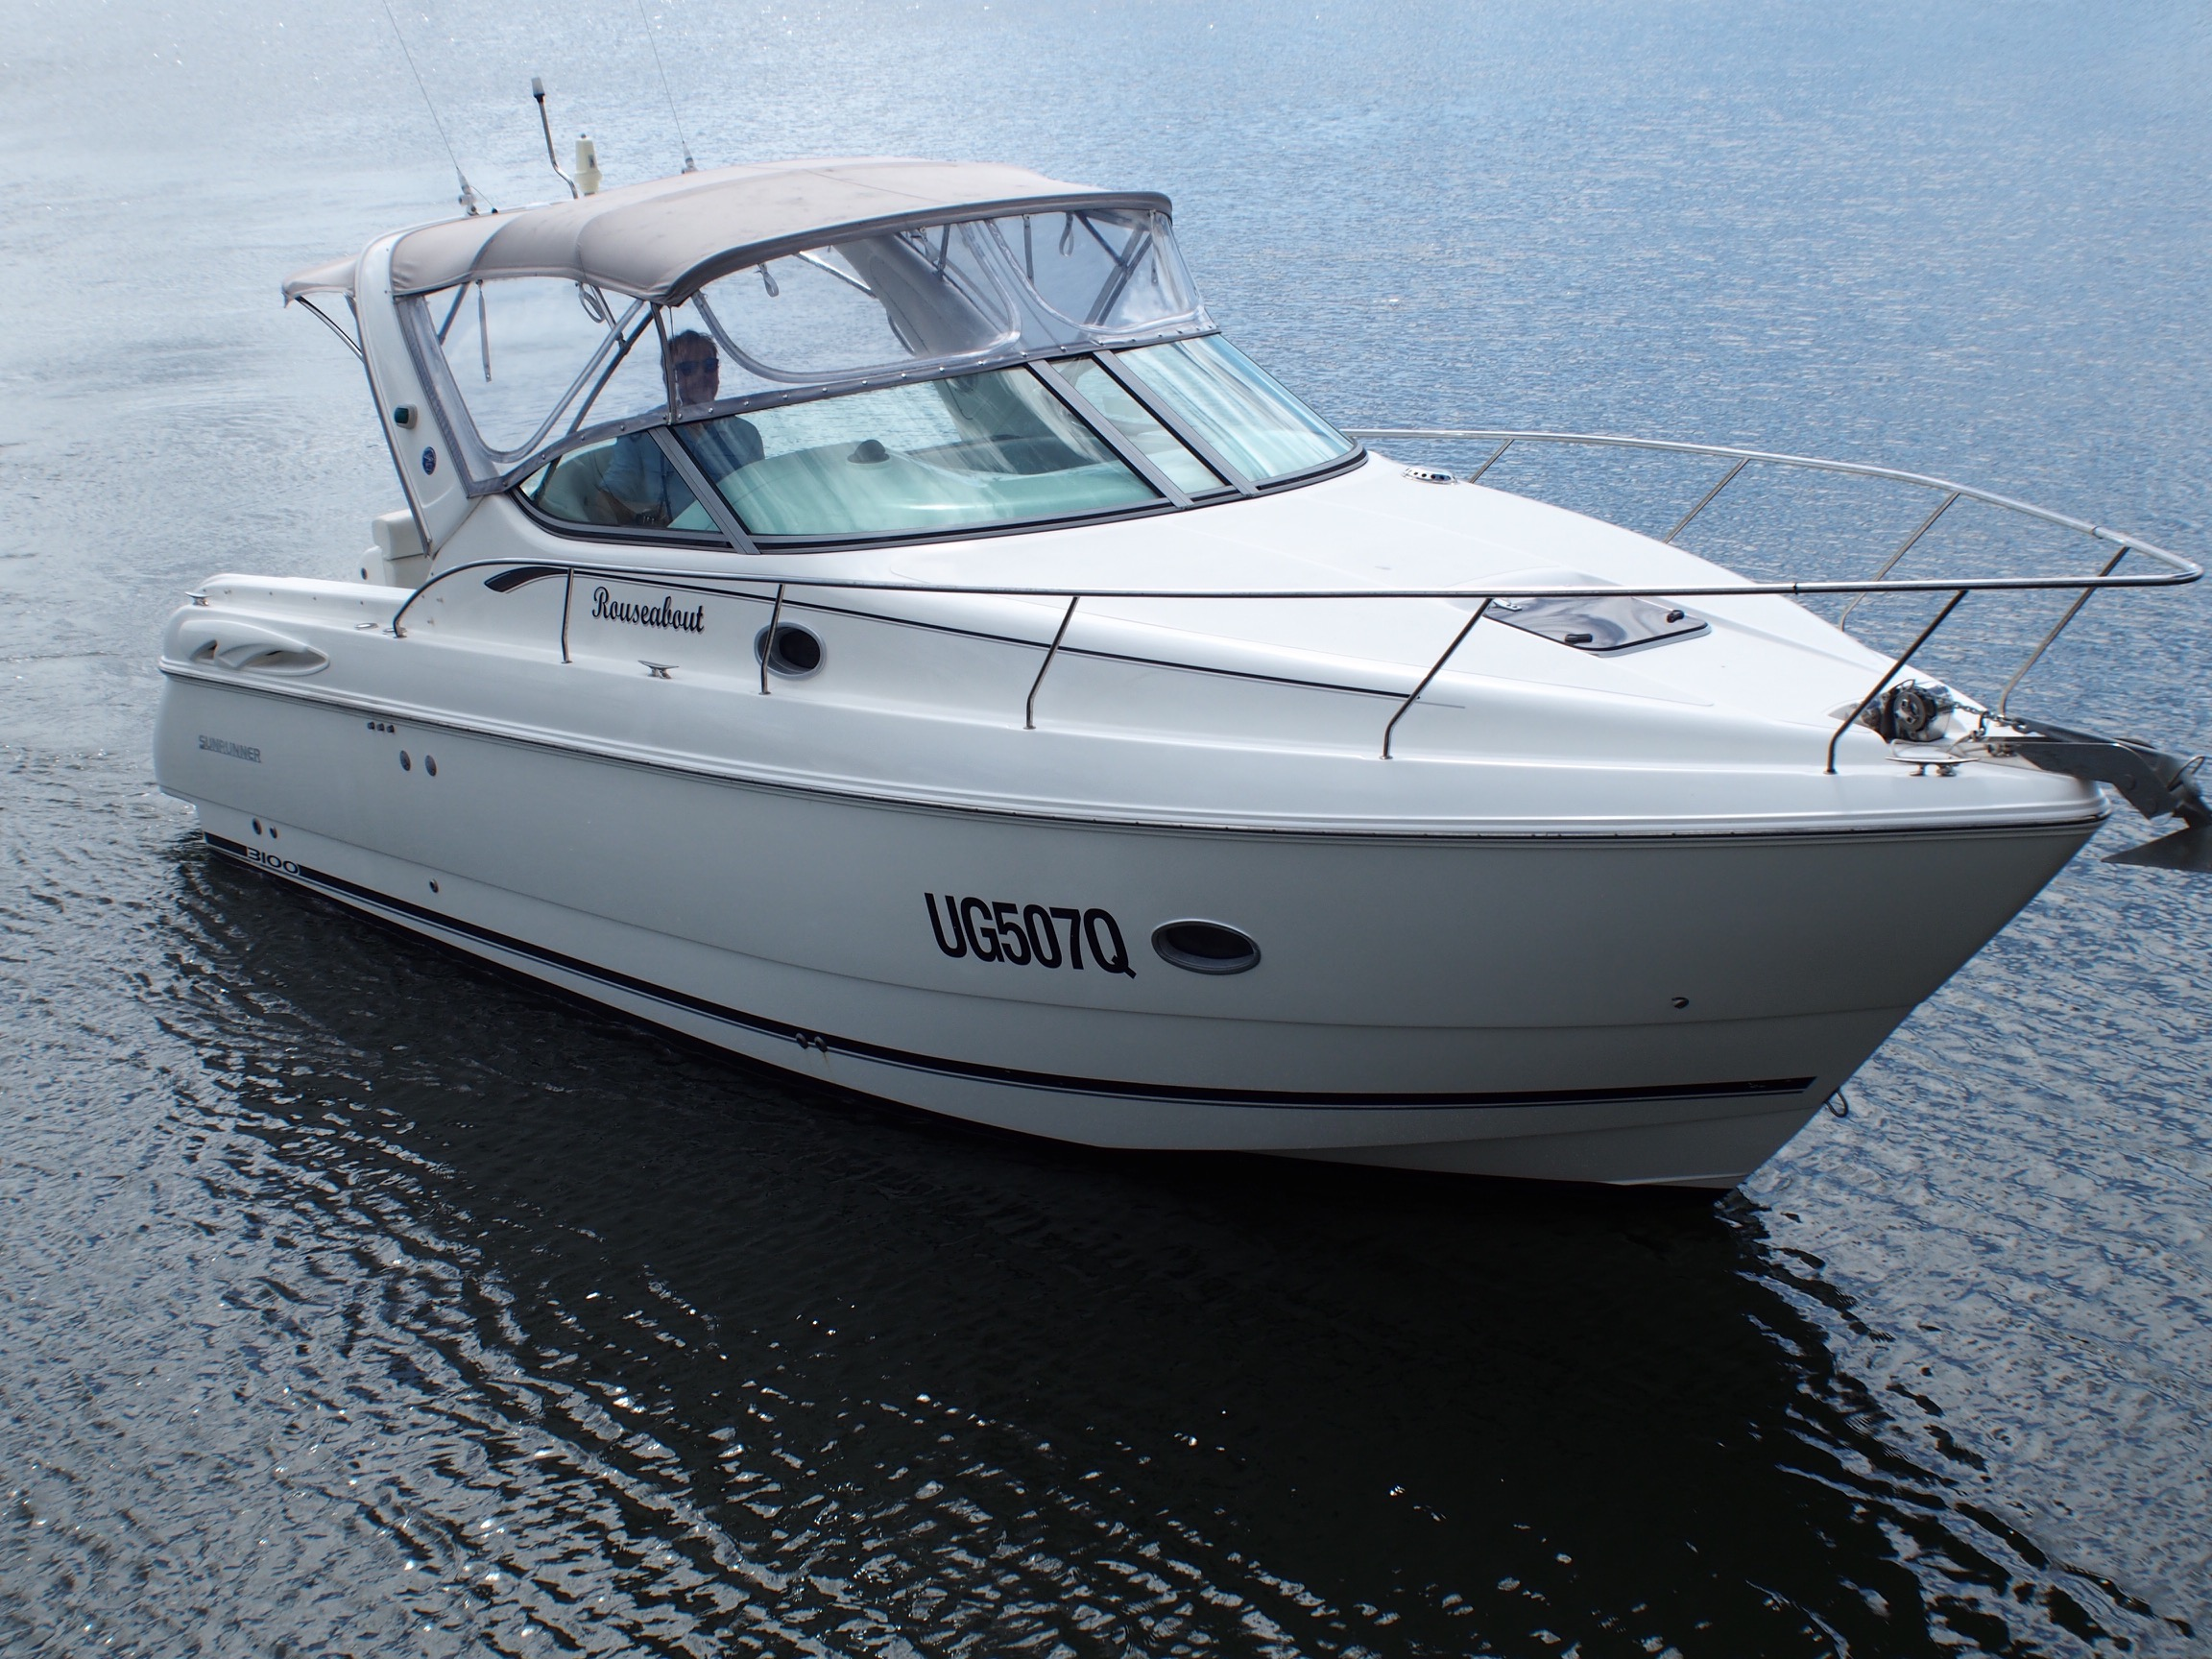 Sunrunner 3100 Very Clean Affordable Boating